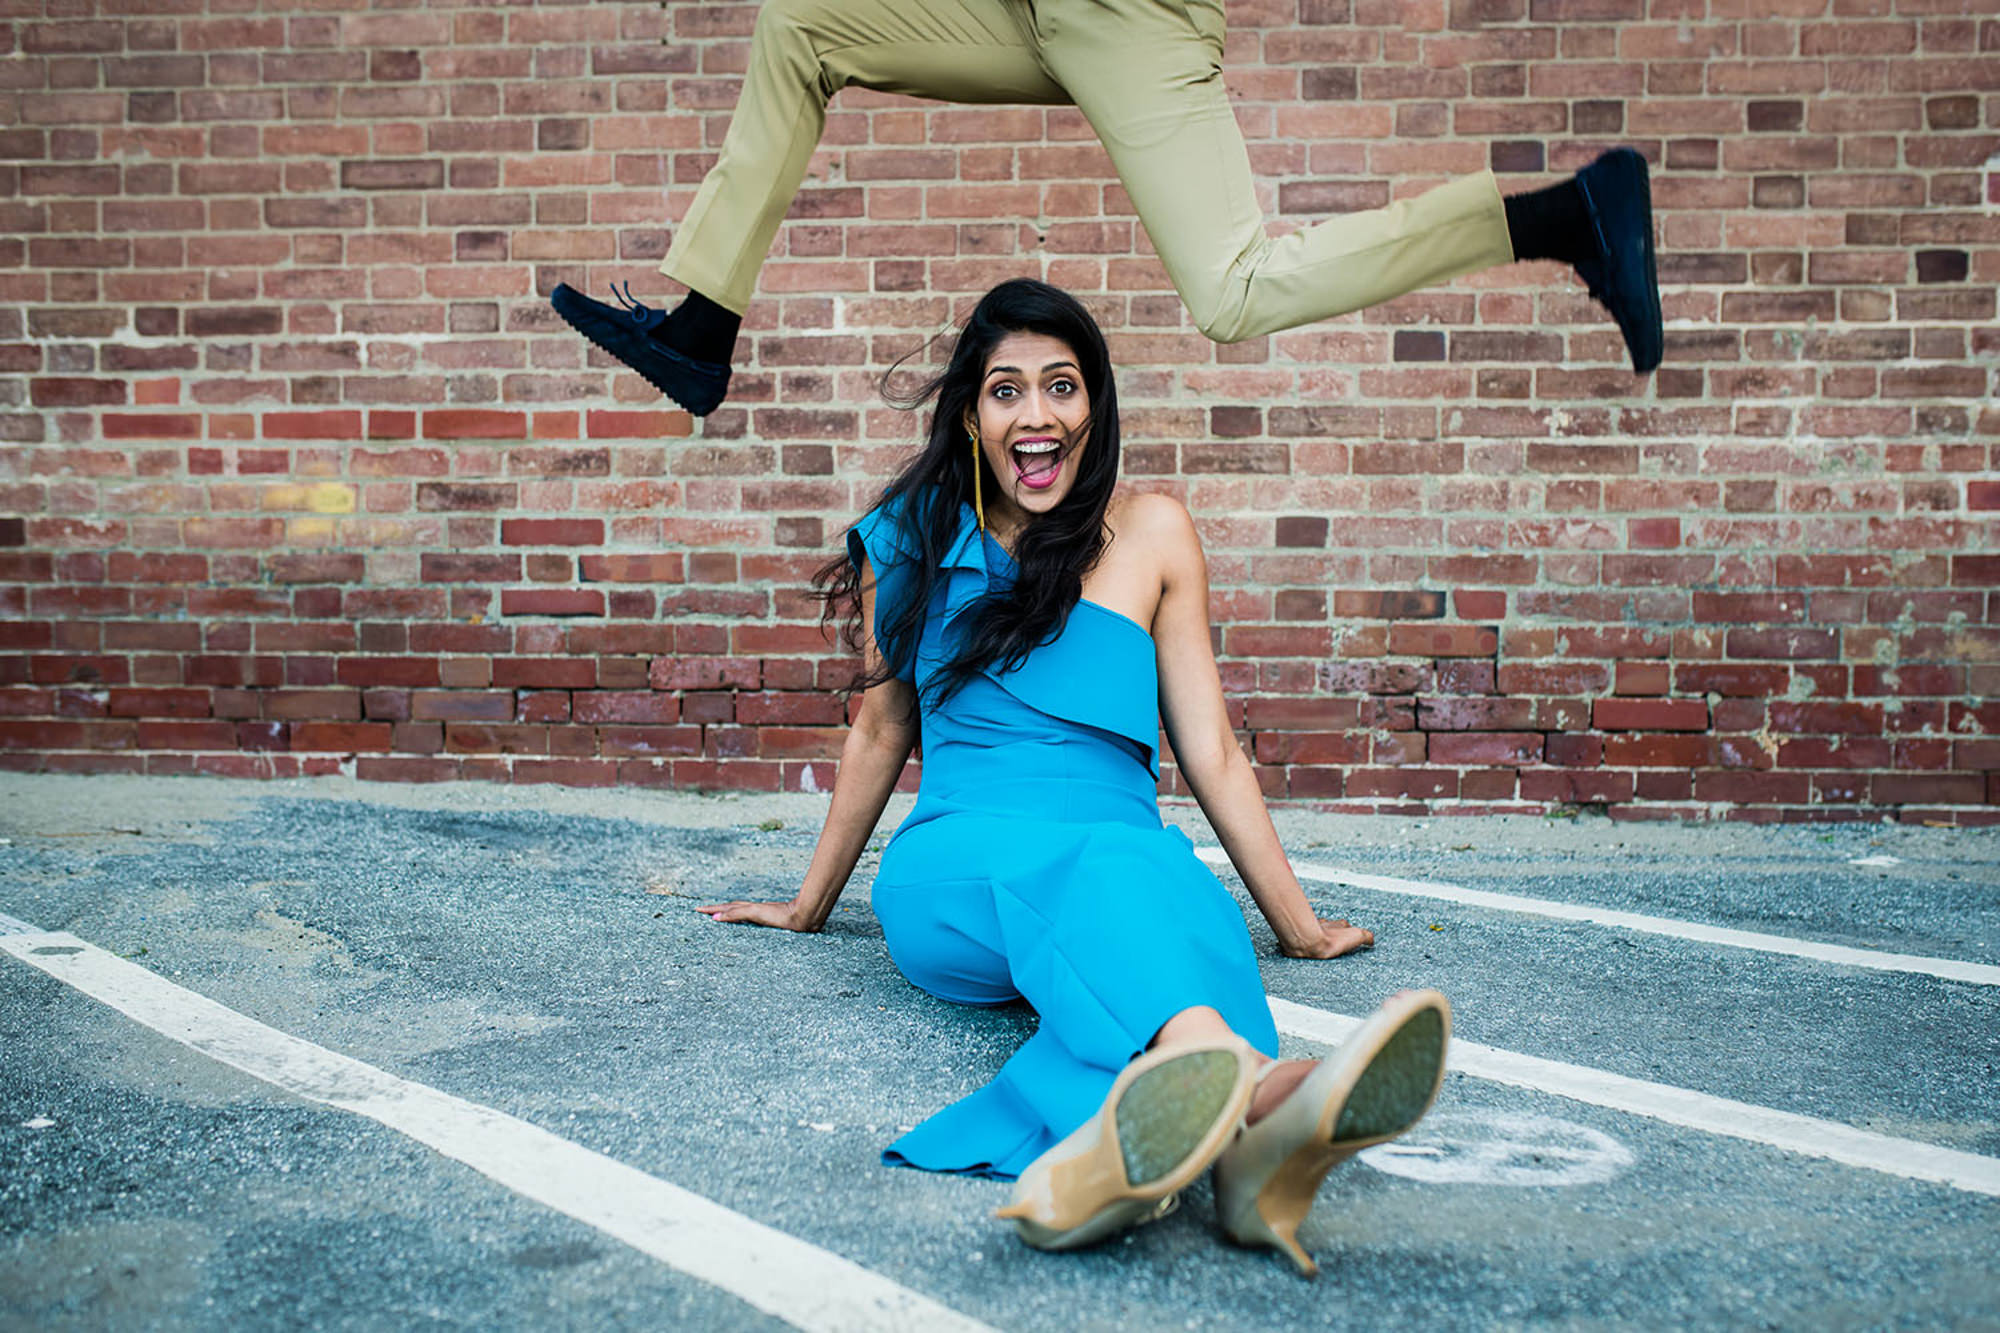 Groom jumping over bride in blue outfit photo by Rimi Sen